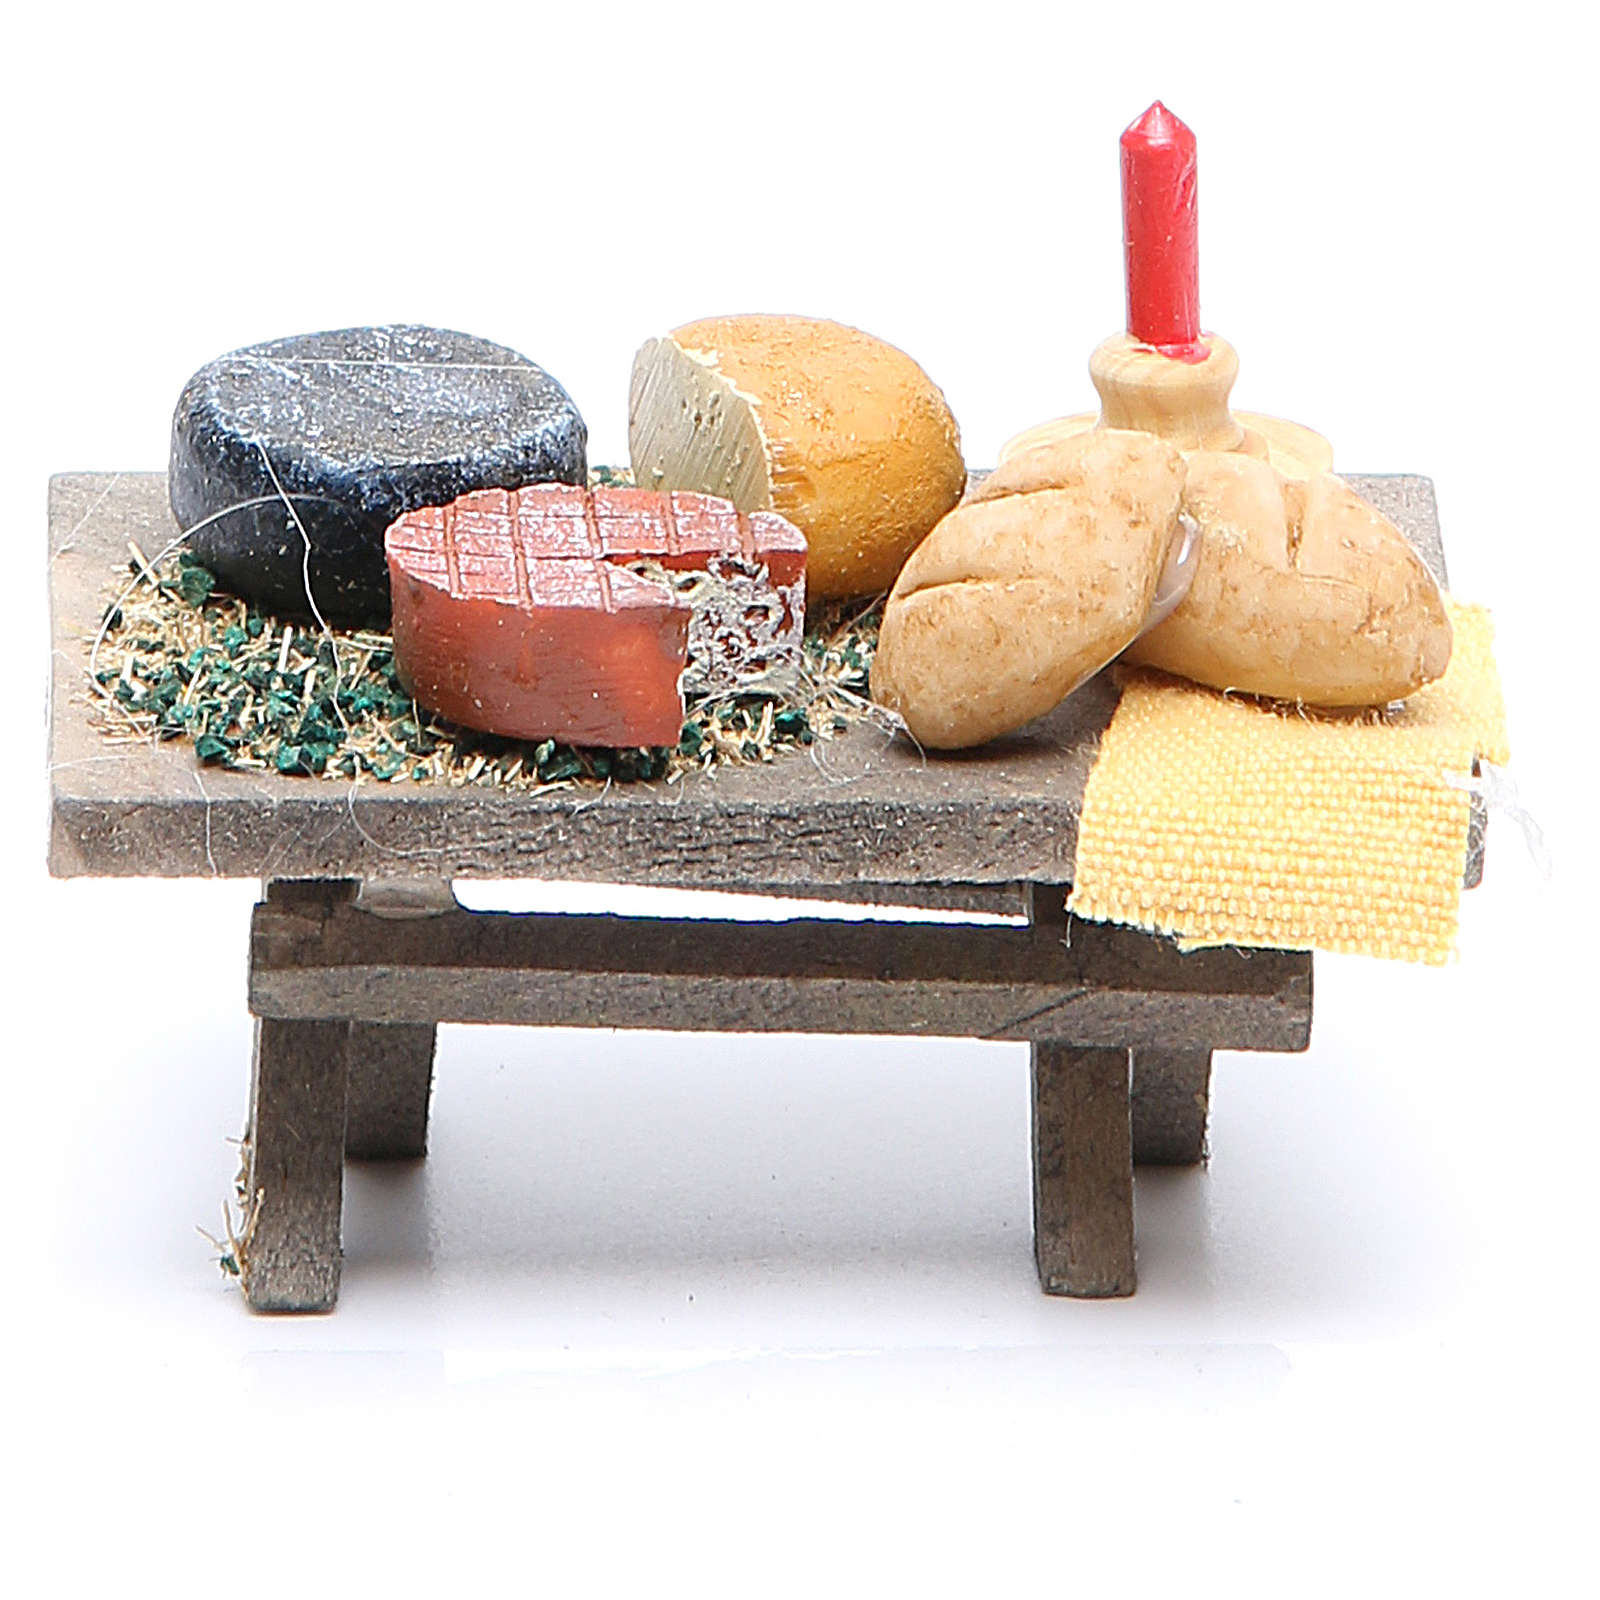 Table full of food 7x4x3.5cm assorted models 4